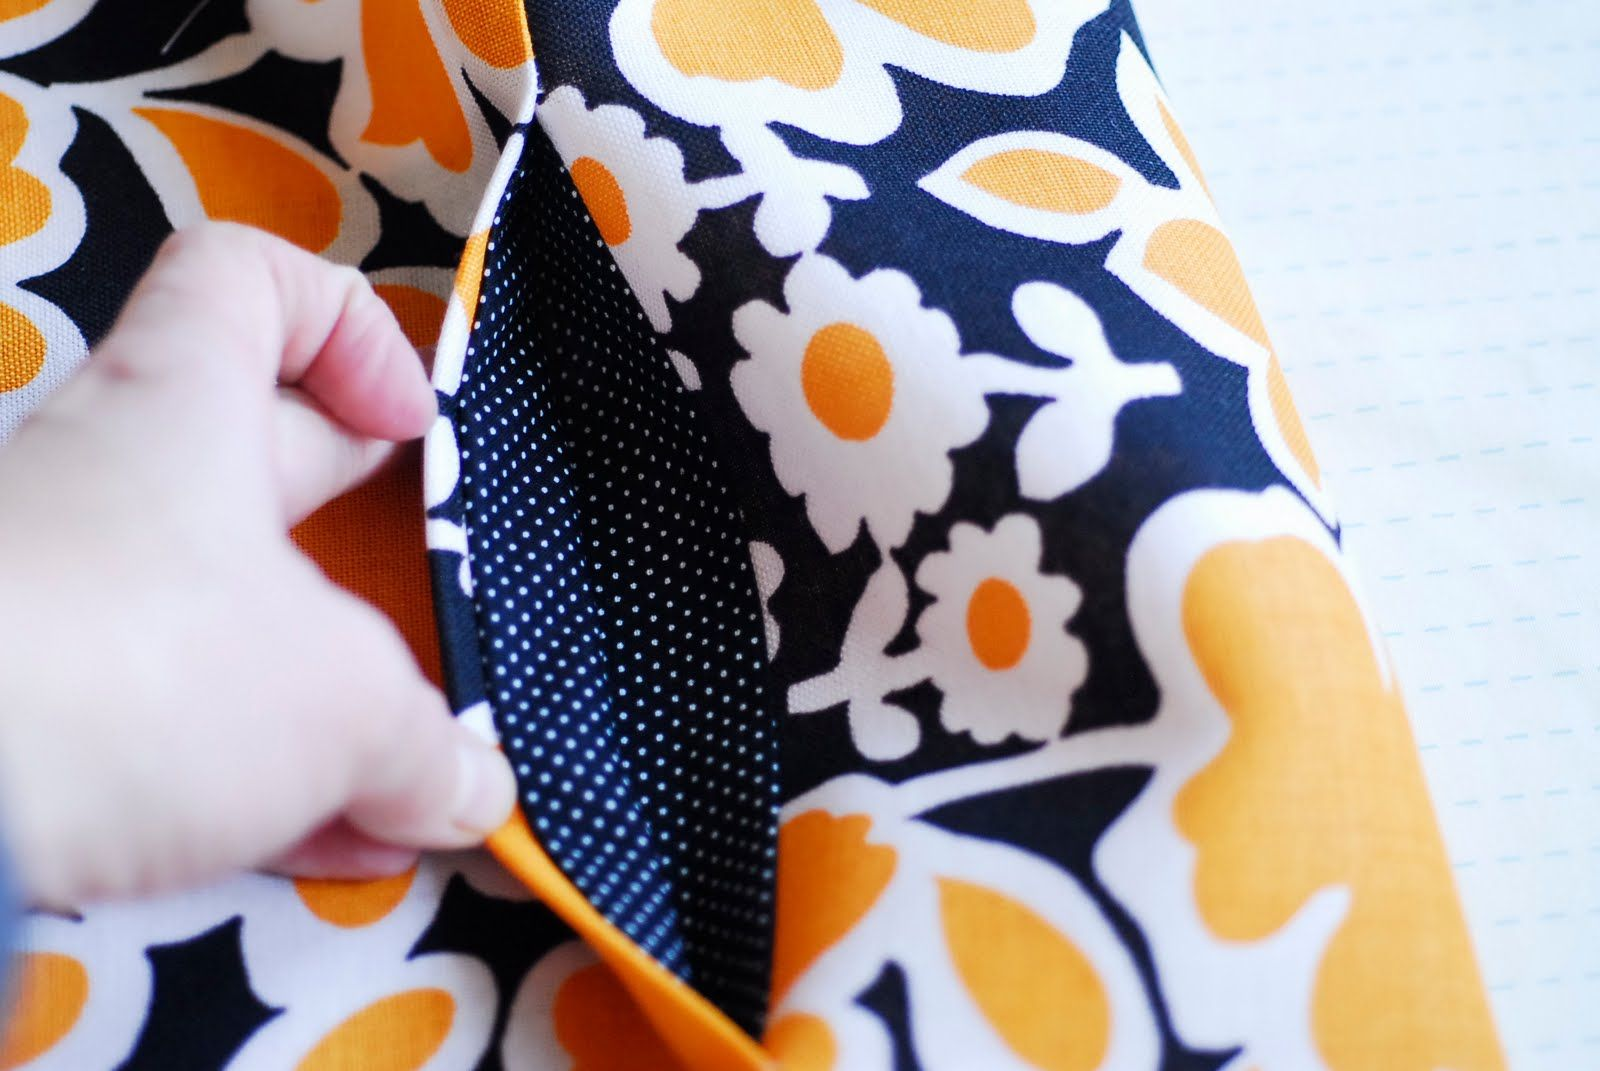 how to sew pockets - using this for my next skirt! love pockets!